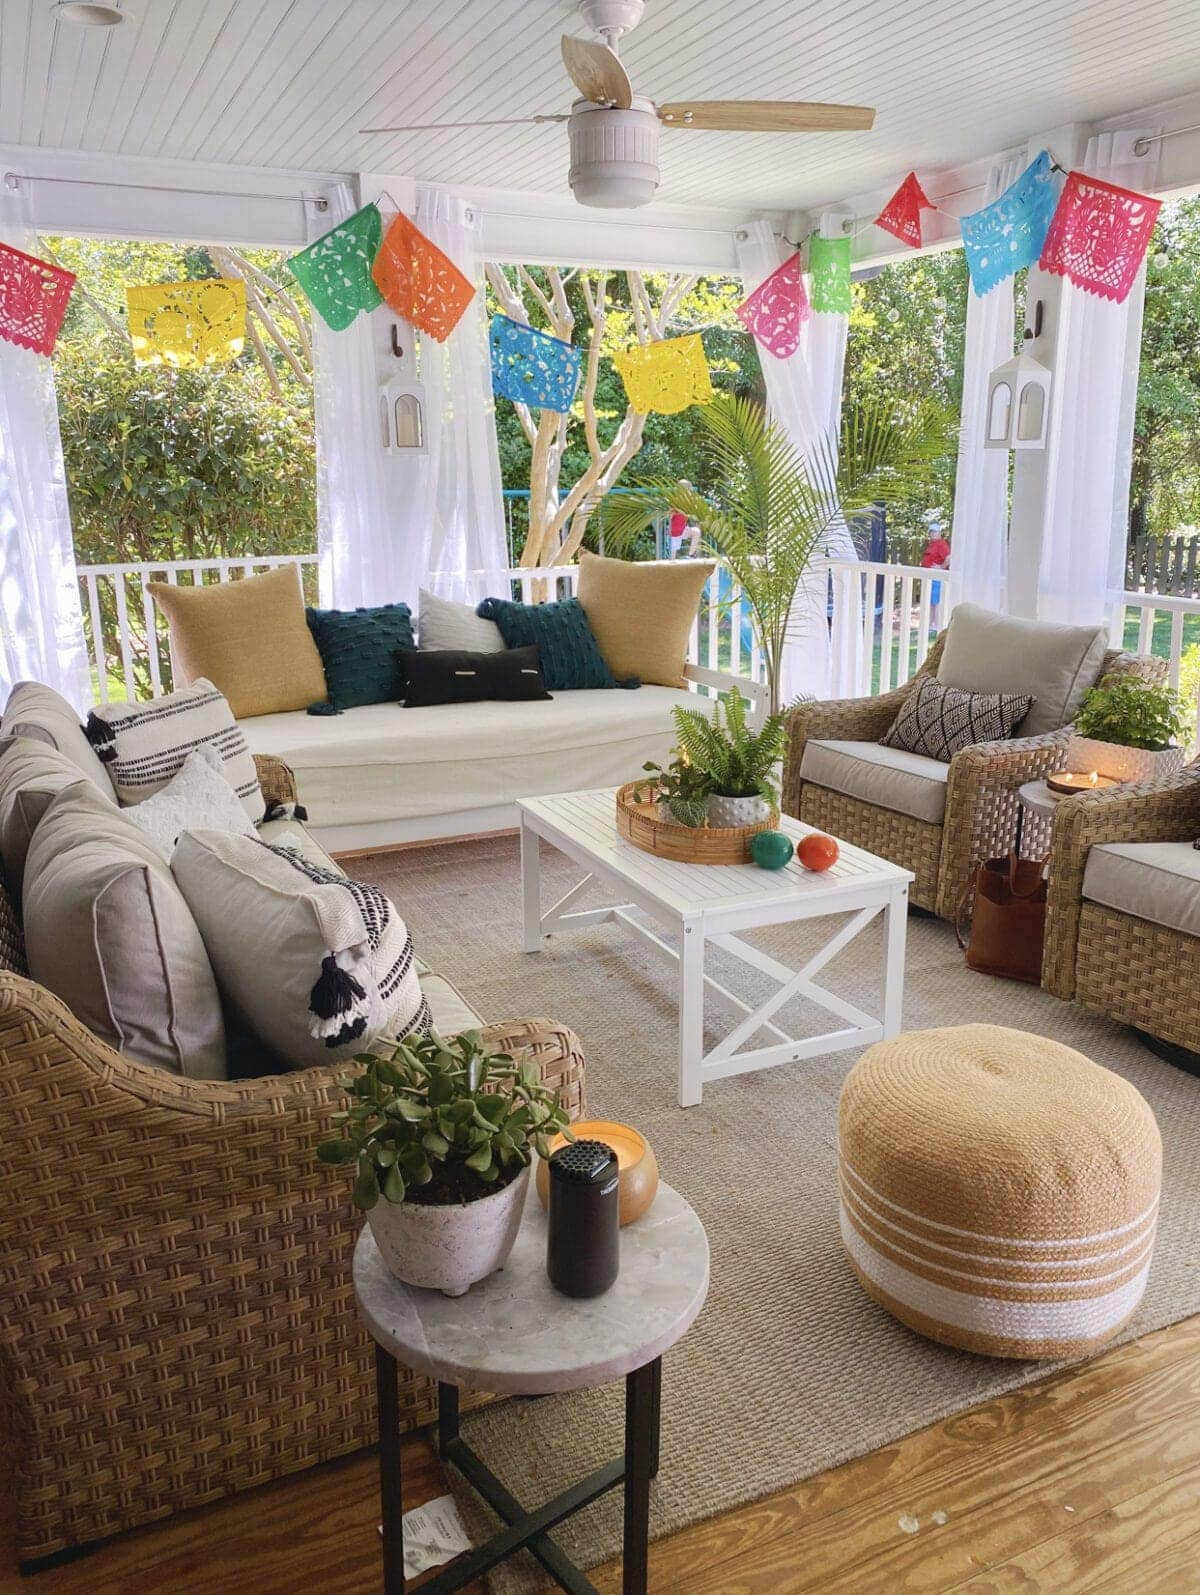 Colorful Mexican banners around back porch sitting area